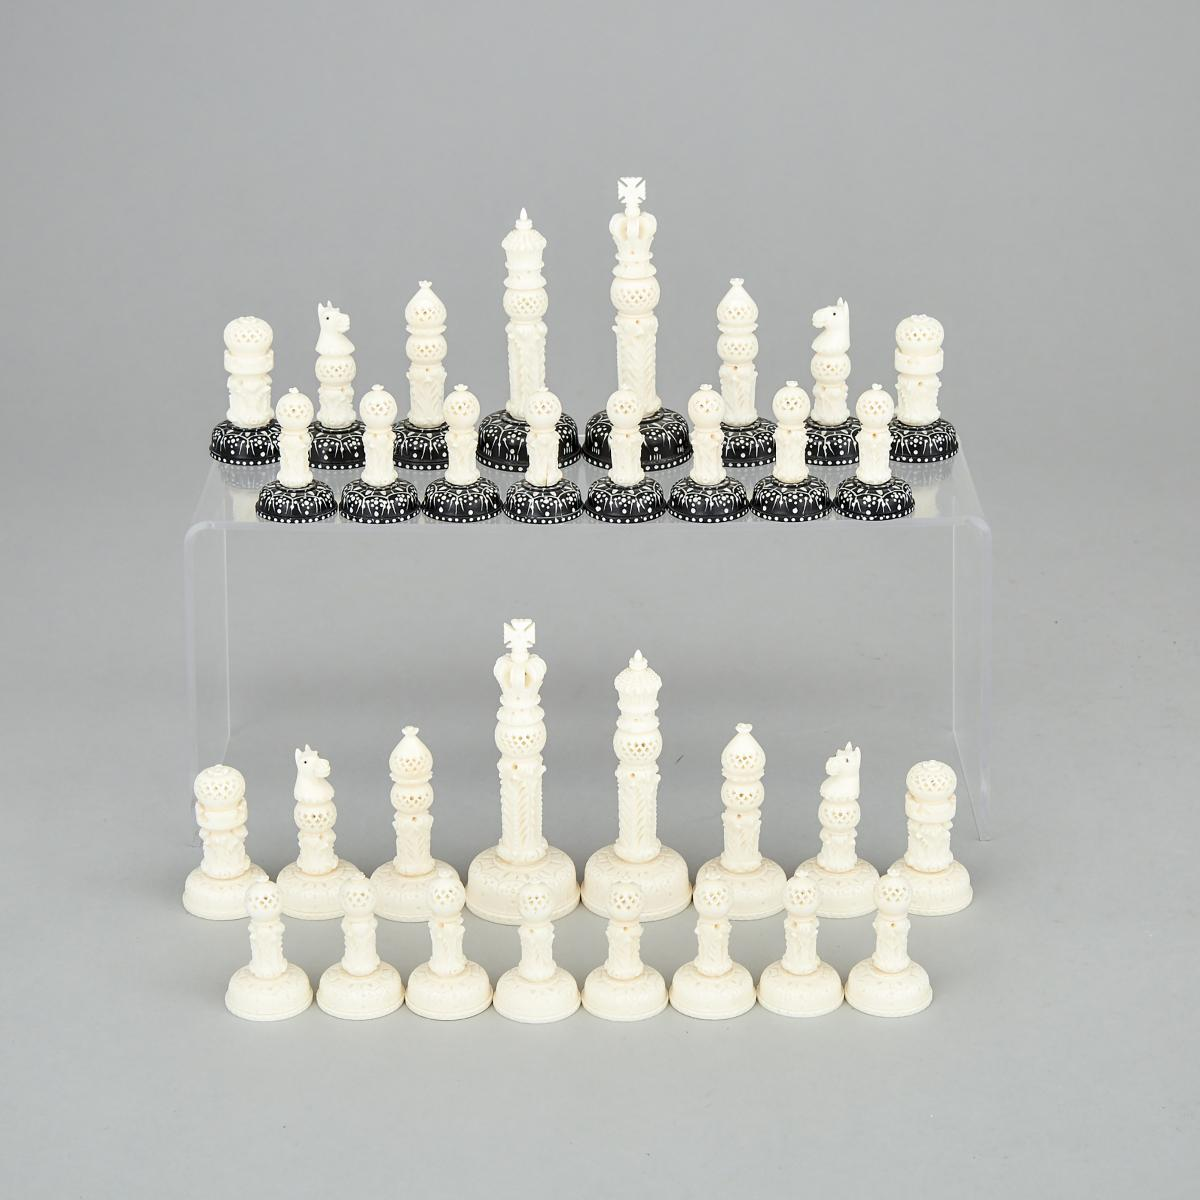 Lot 36 - Indian Ivory Pierce Carved Chess Set, early-mid 20th century, height 4 in — 10.2 cm